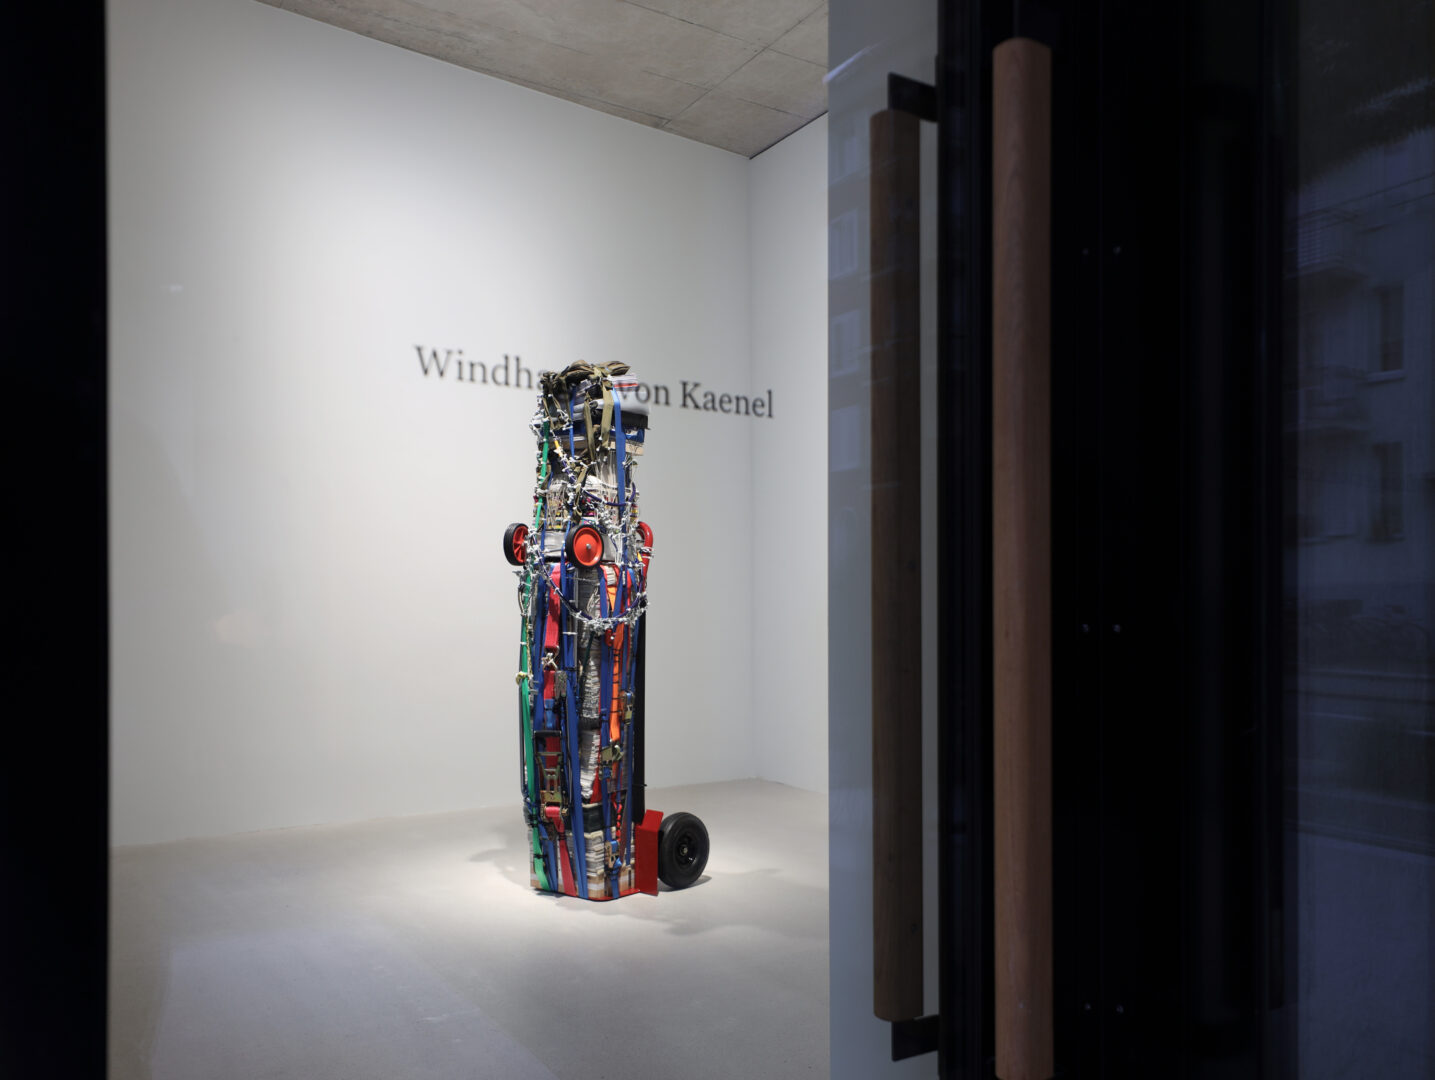 Exhibition View Umut Yasat Soloshow «5/1» at Windhager von Kaenel, Zurich, 2020 / Photo: Fabian Windhager / Courtesy: the artist and Windhager von Kaenel